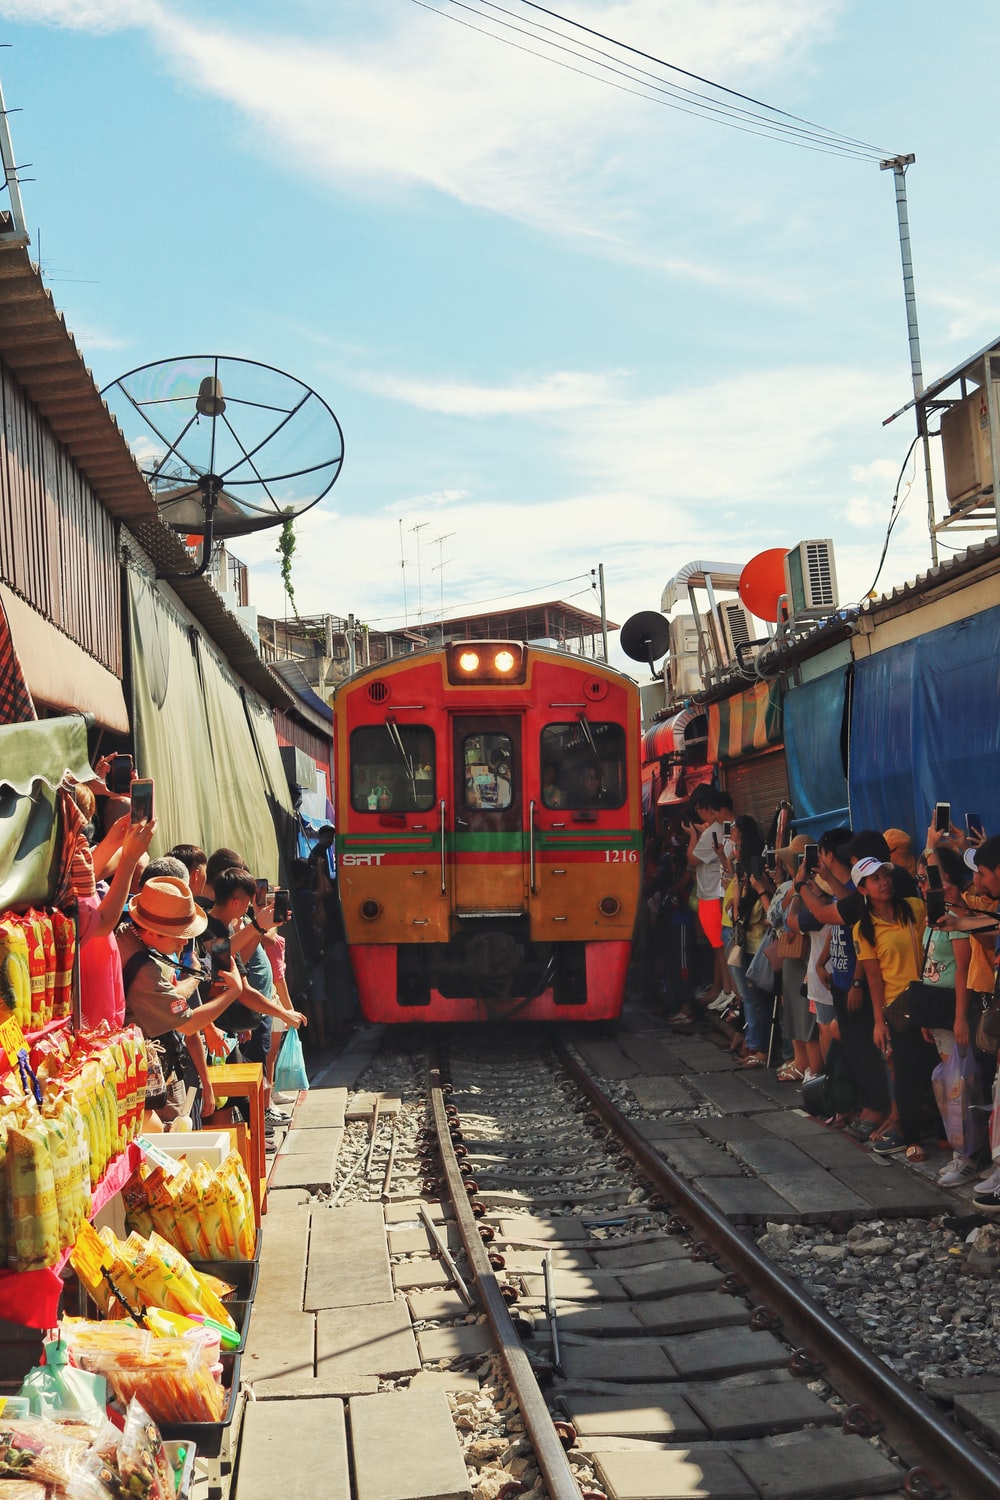 people near red train during daytime